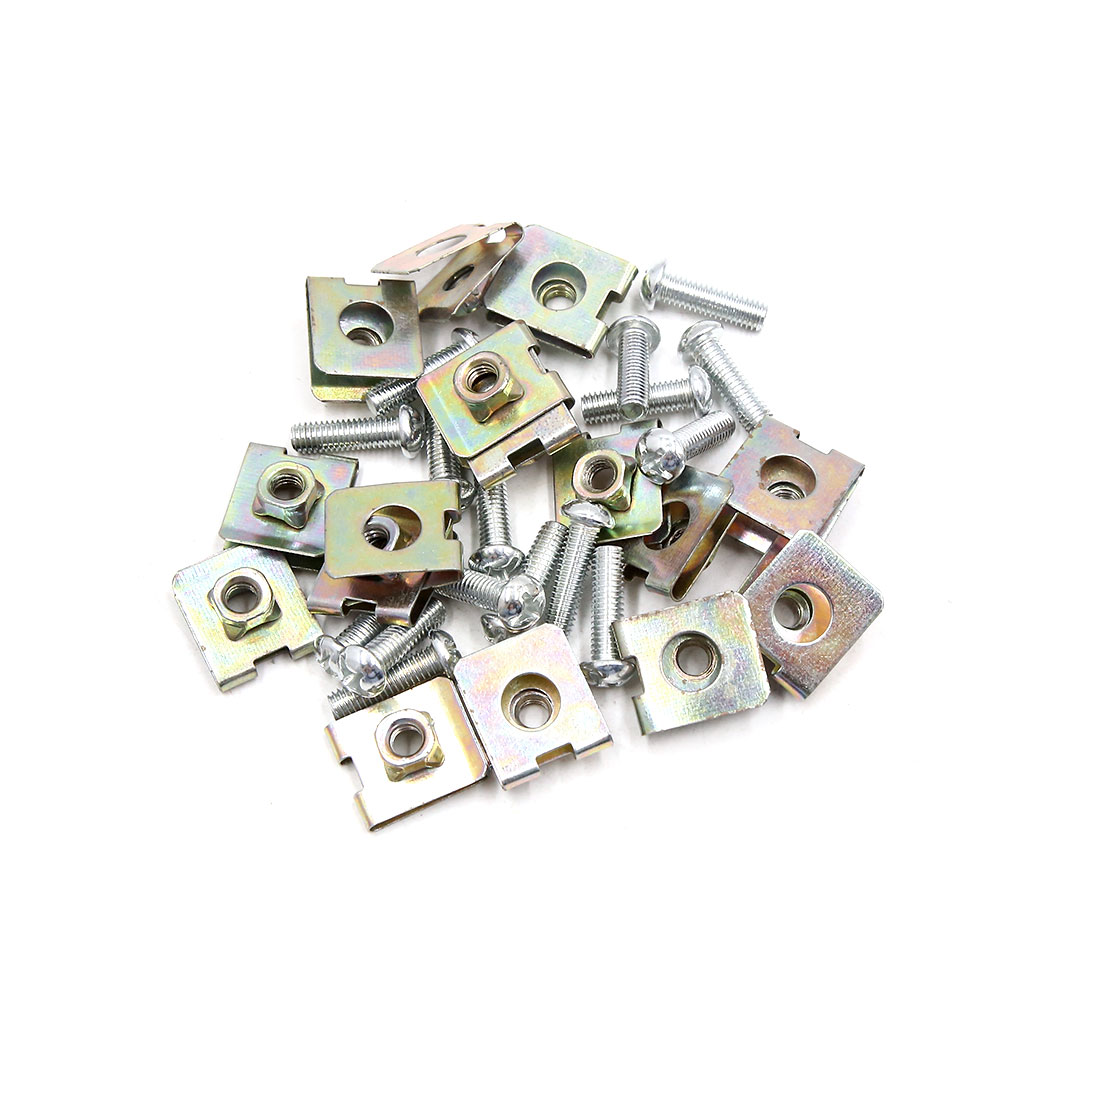 16PCS 6mm Thread Dia License Plate Fixing Clips Kit for Motorcycle Car w/ Screws